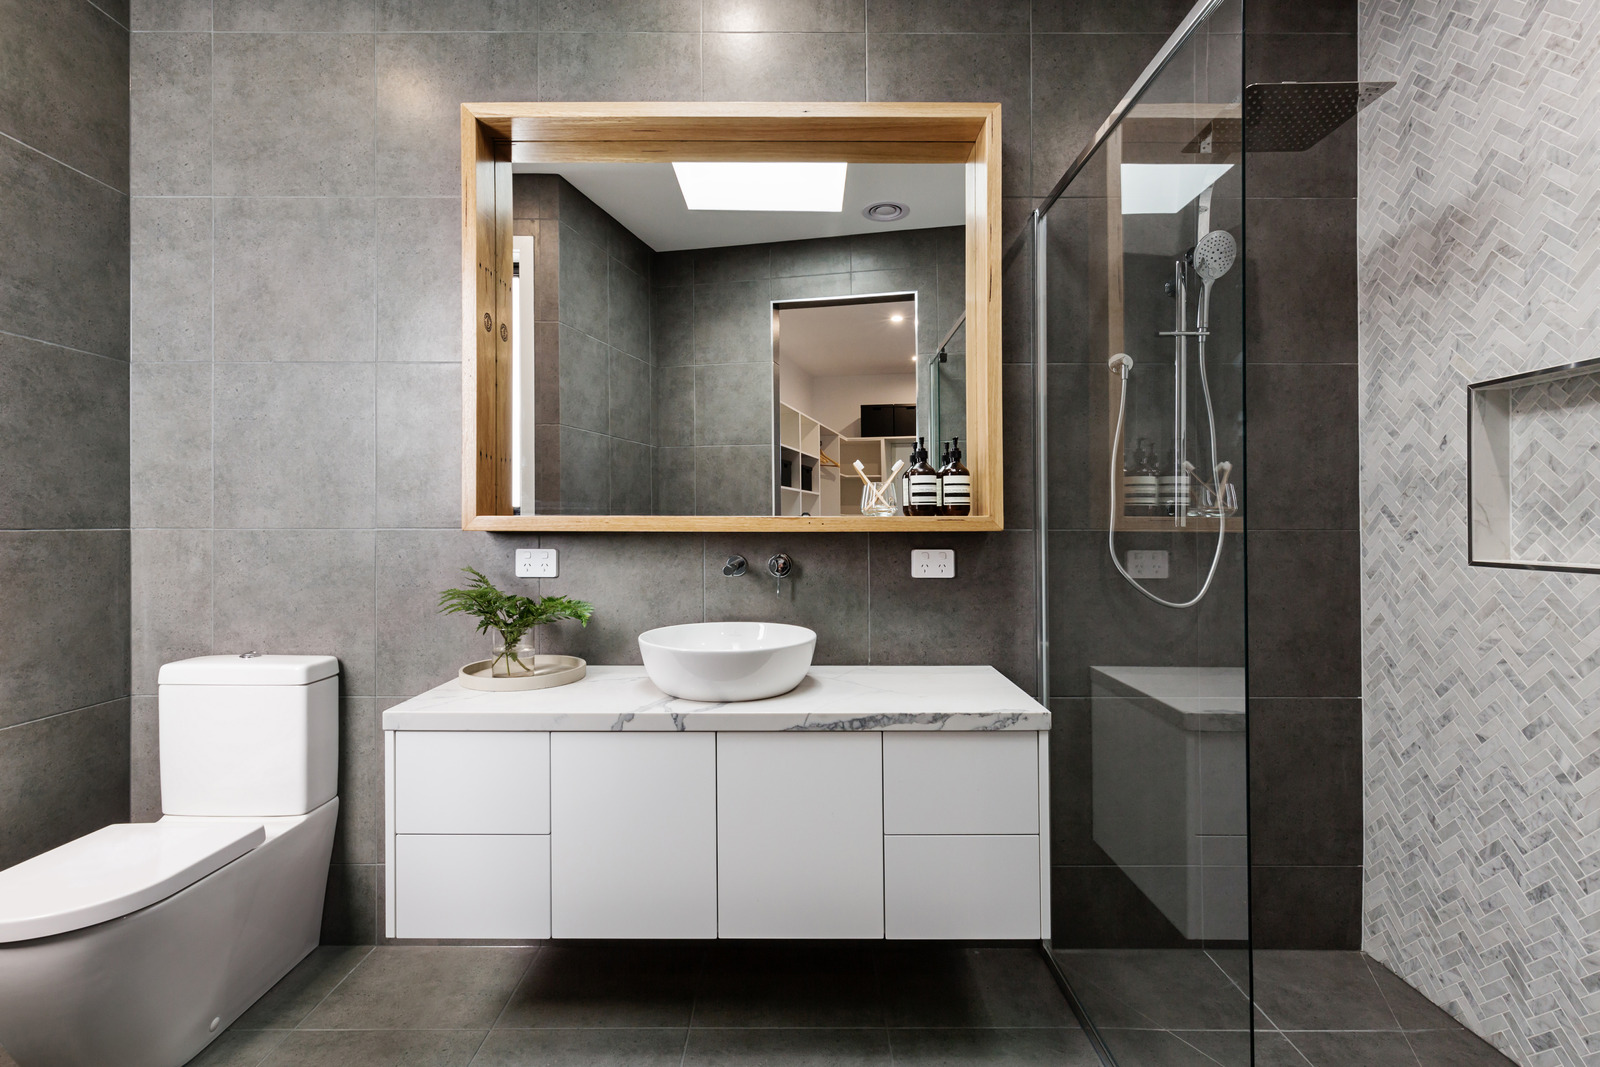 How to choose the best bathroom wall panels?